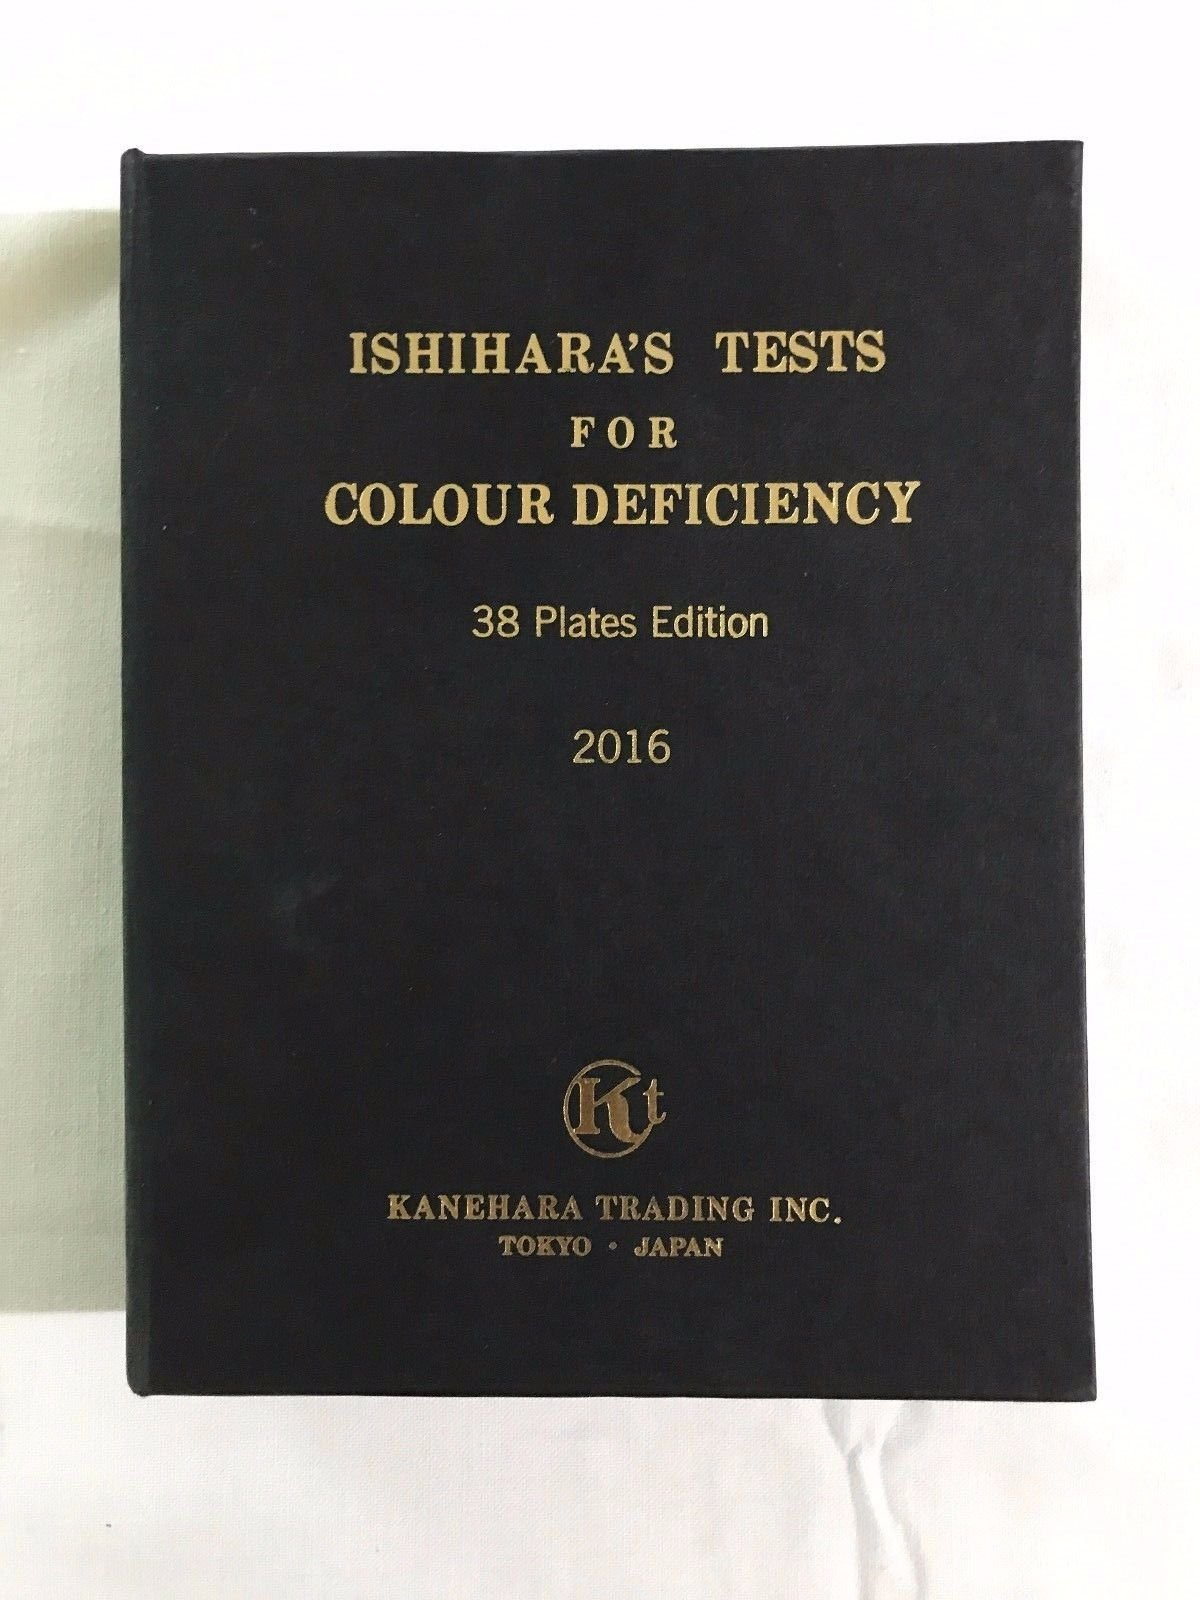 Amazon jaeger eye chart near vision reading test plastic chart ishiharas book for colour deficiency latest edition 38 plates with user manual nvjuhfo Gallery